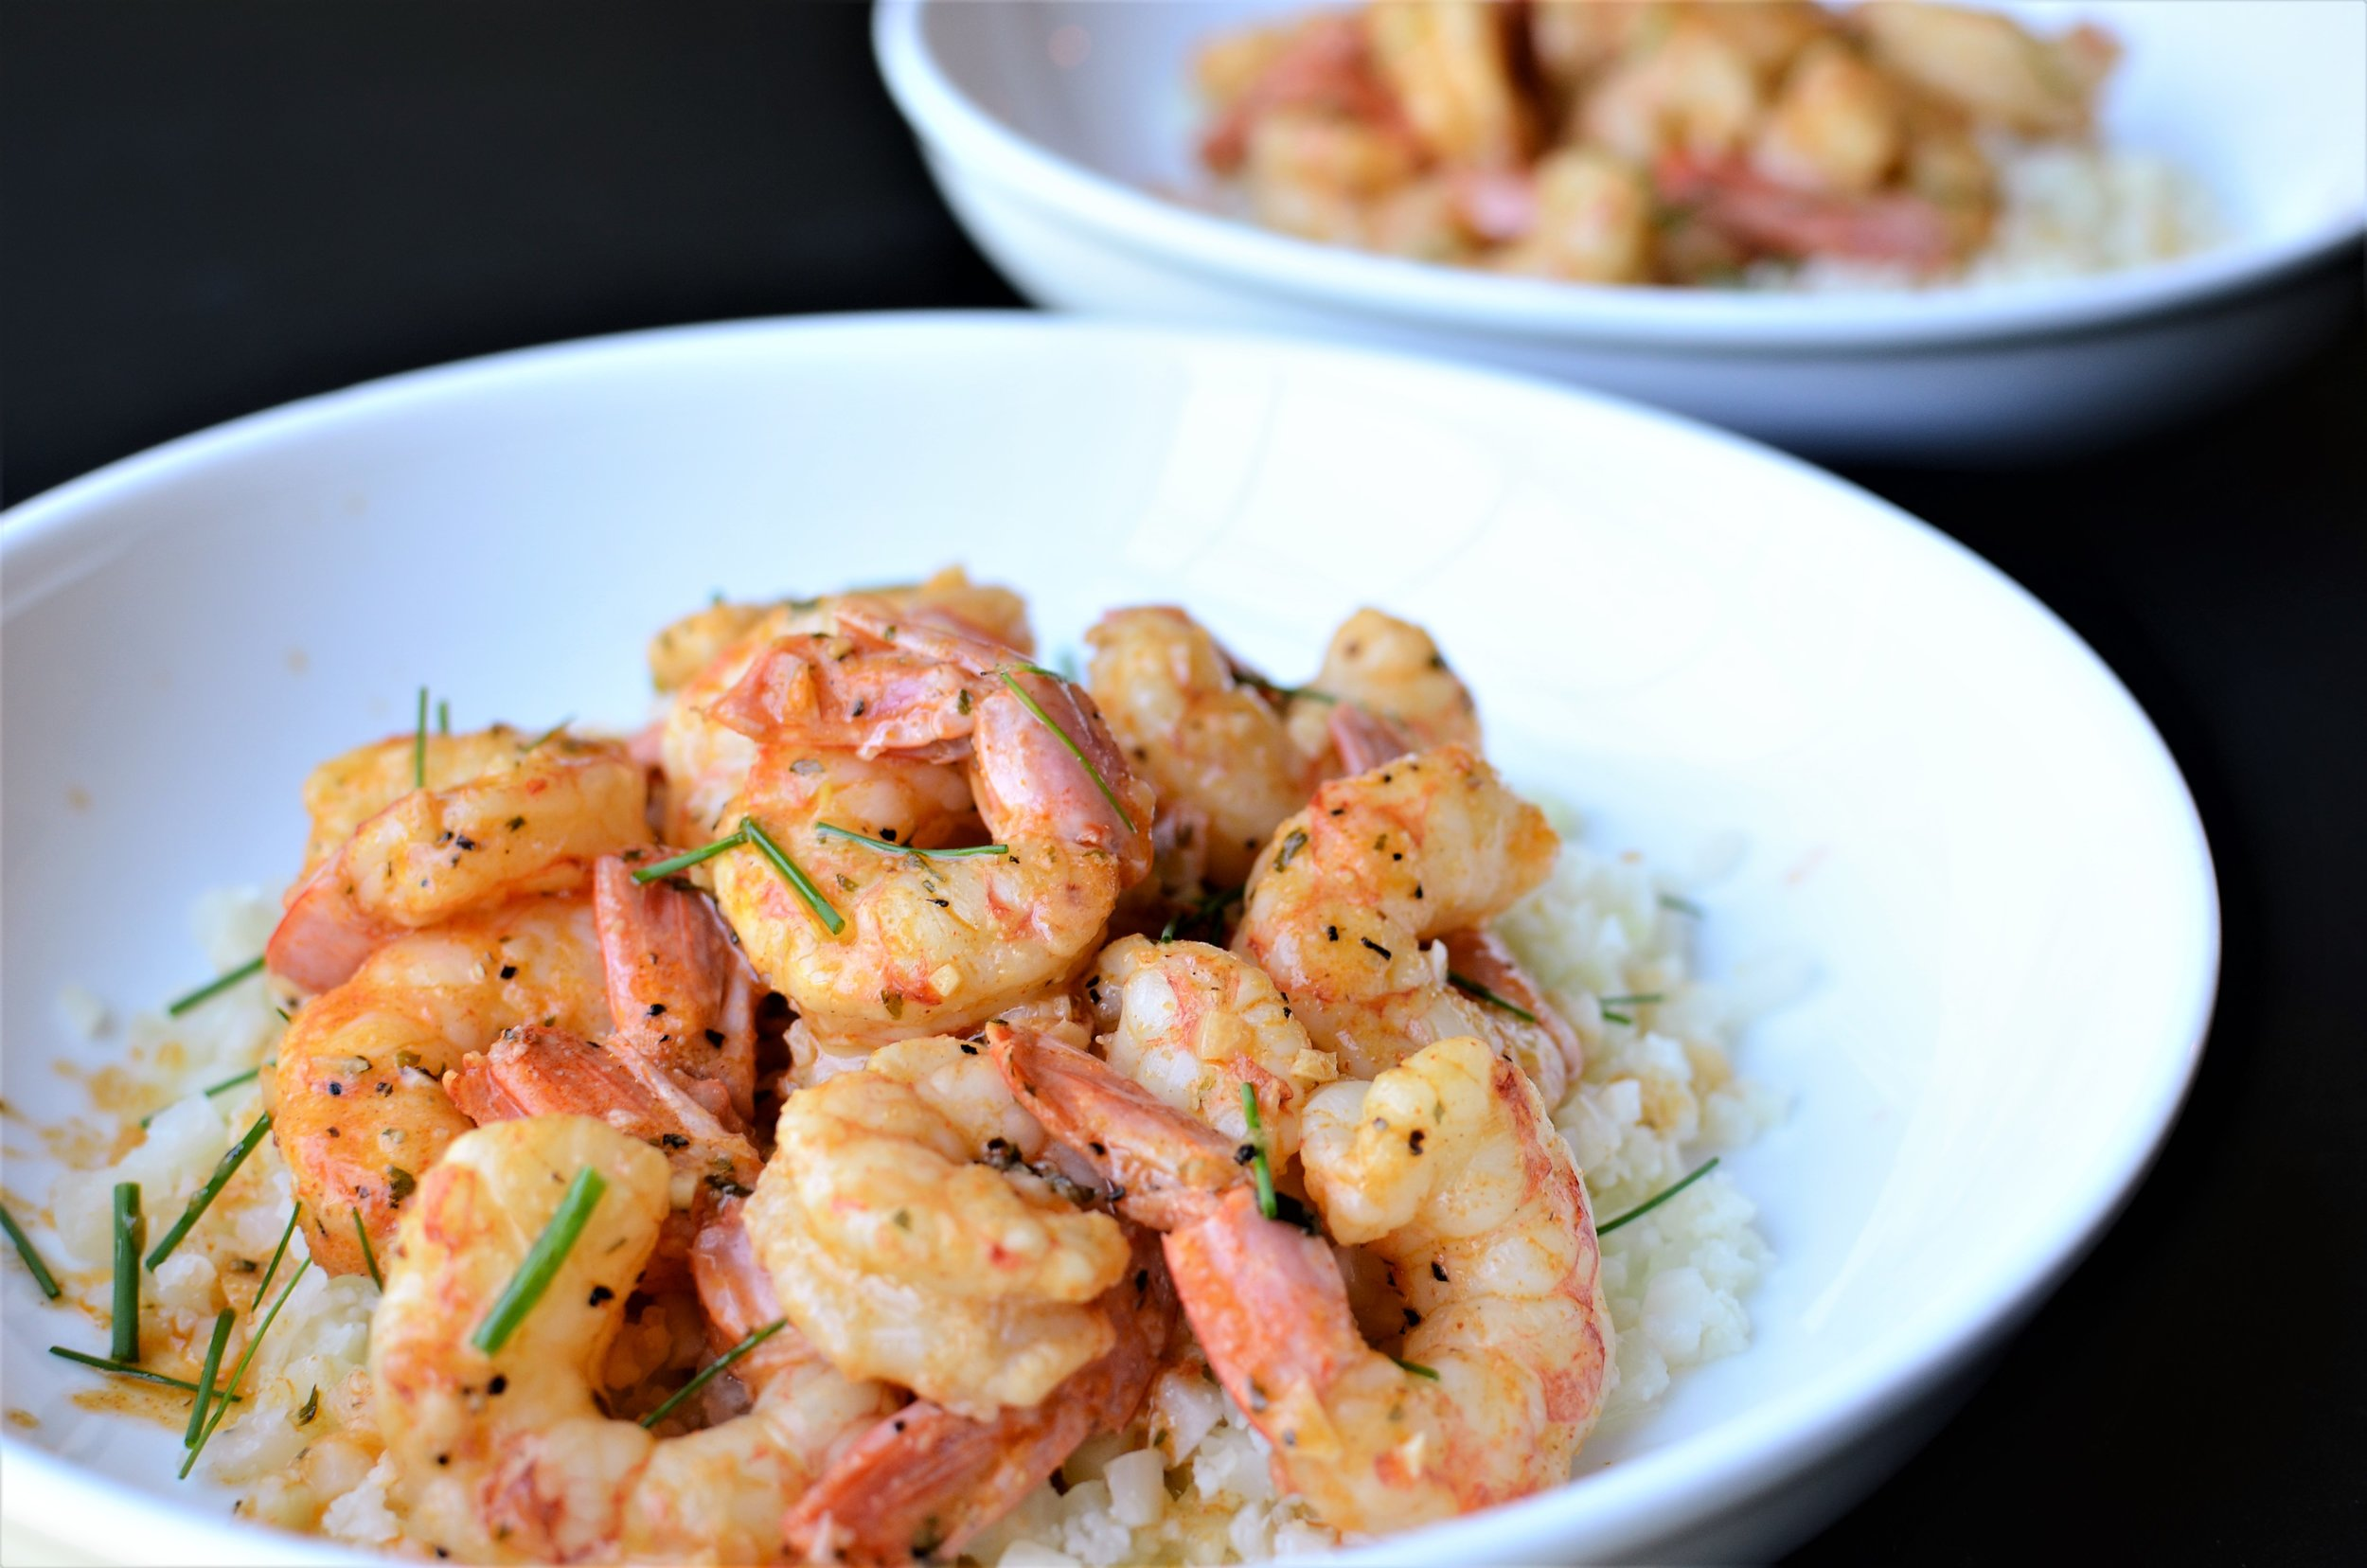 chili lime shrimp. copycat recipe for chili's spicy garlic and lime shrimp. how to make chili's shrimp with garlic and lime.